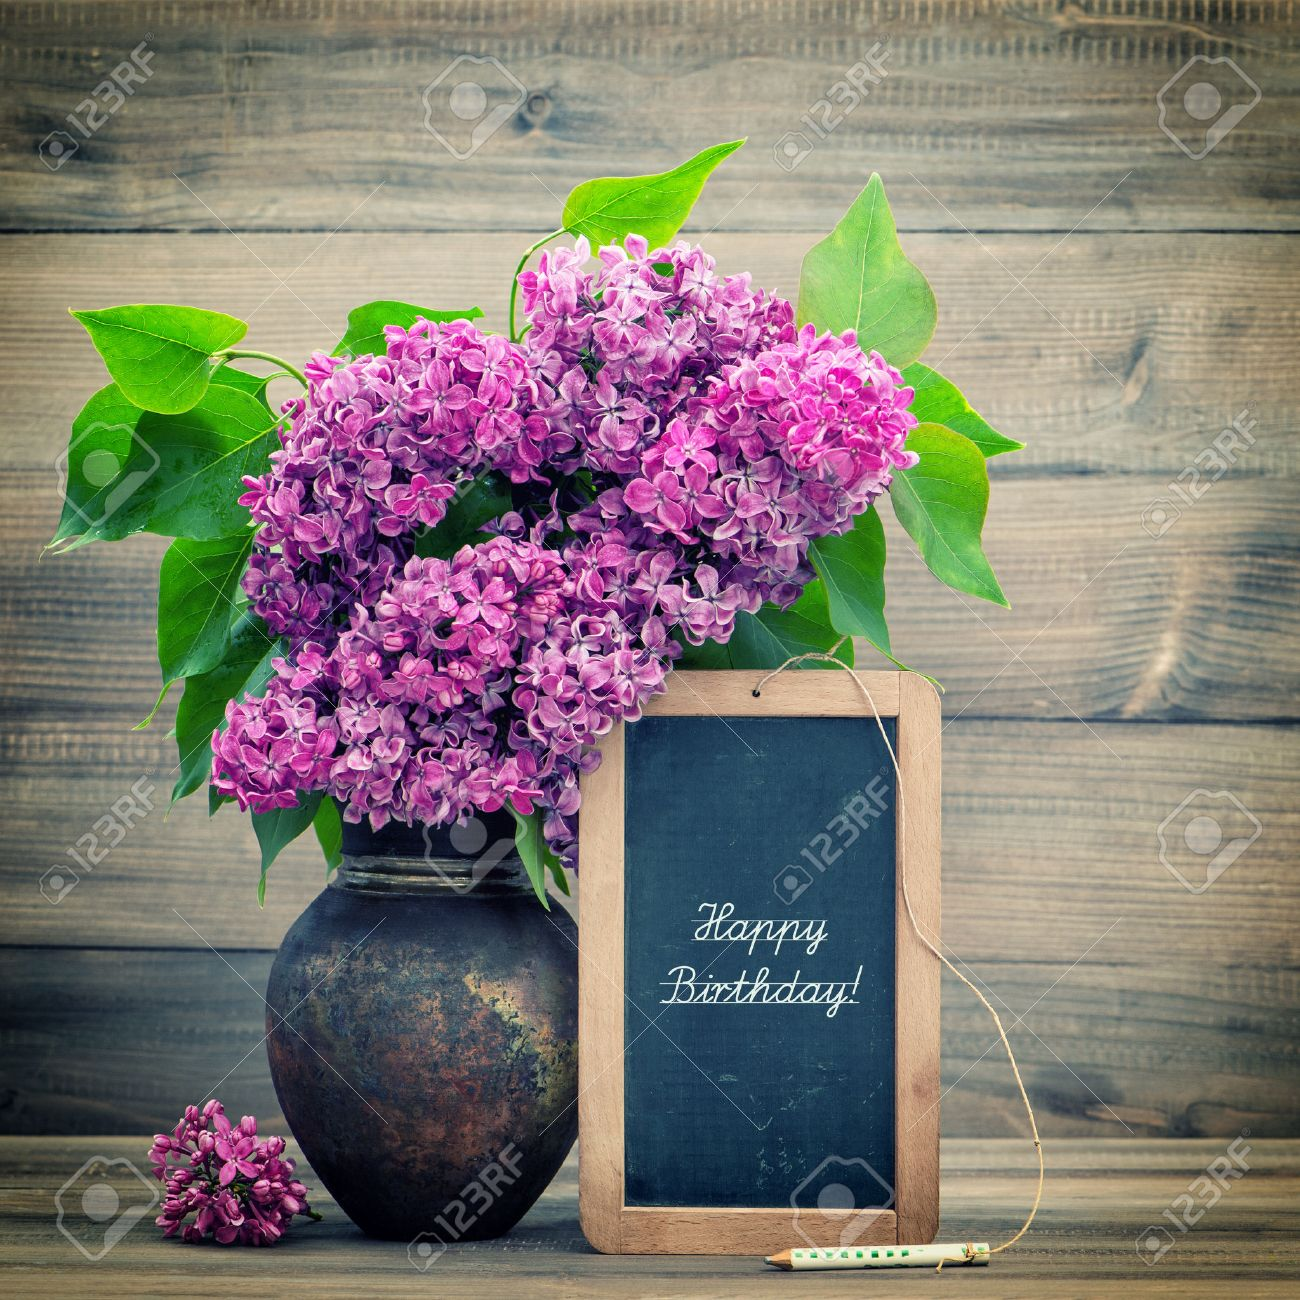 Bouquet of lilac flowers on wooden blackboard with sample text bouquet of lilac flowers on wooden blackboard with sample text happy birthday retro style toned picture izmirmasajfo